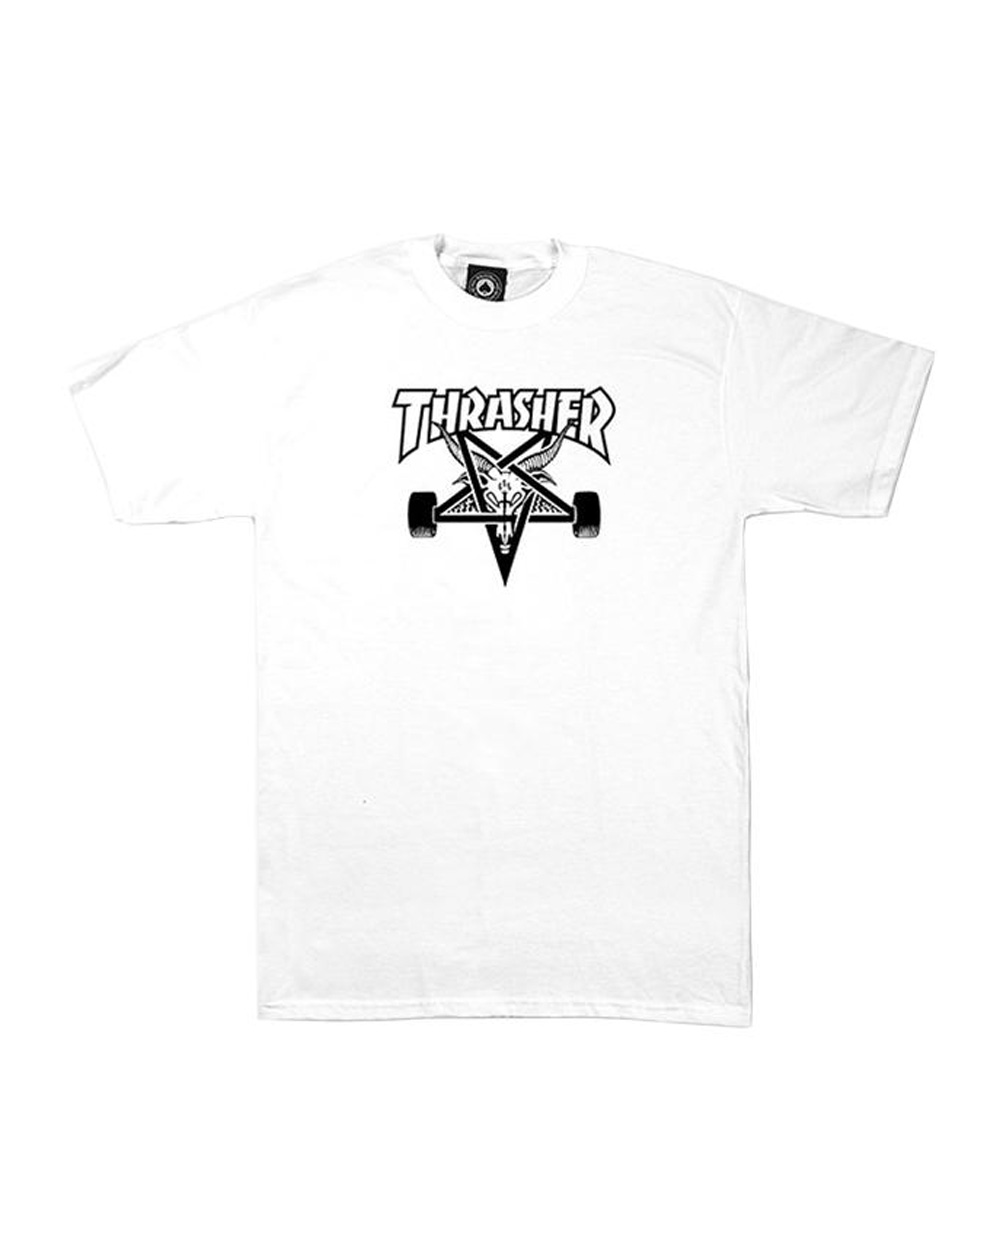 Thrasher Men's T-Shirt Skate Goat White